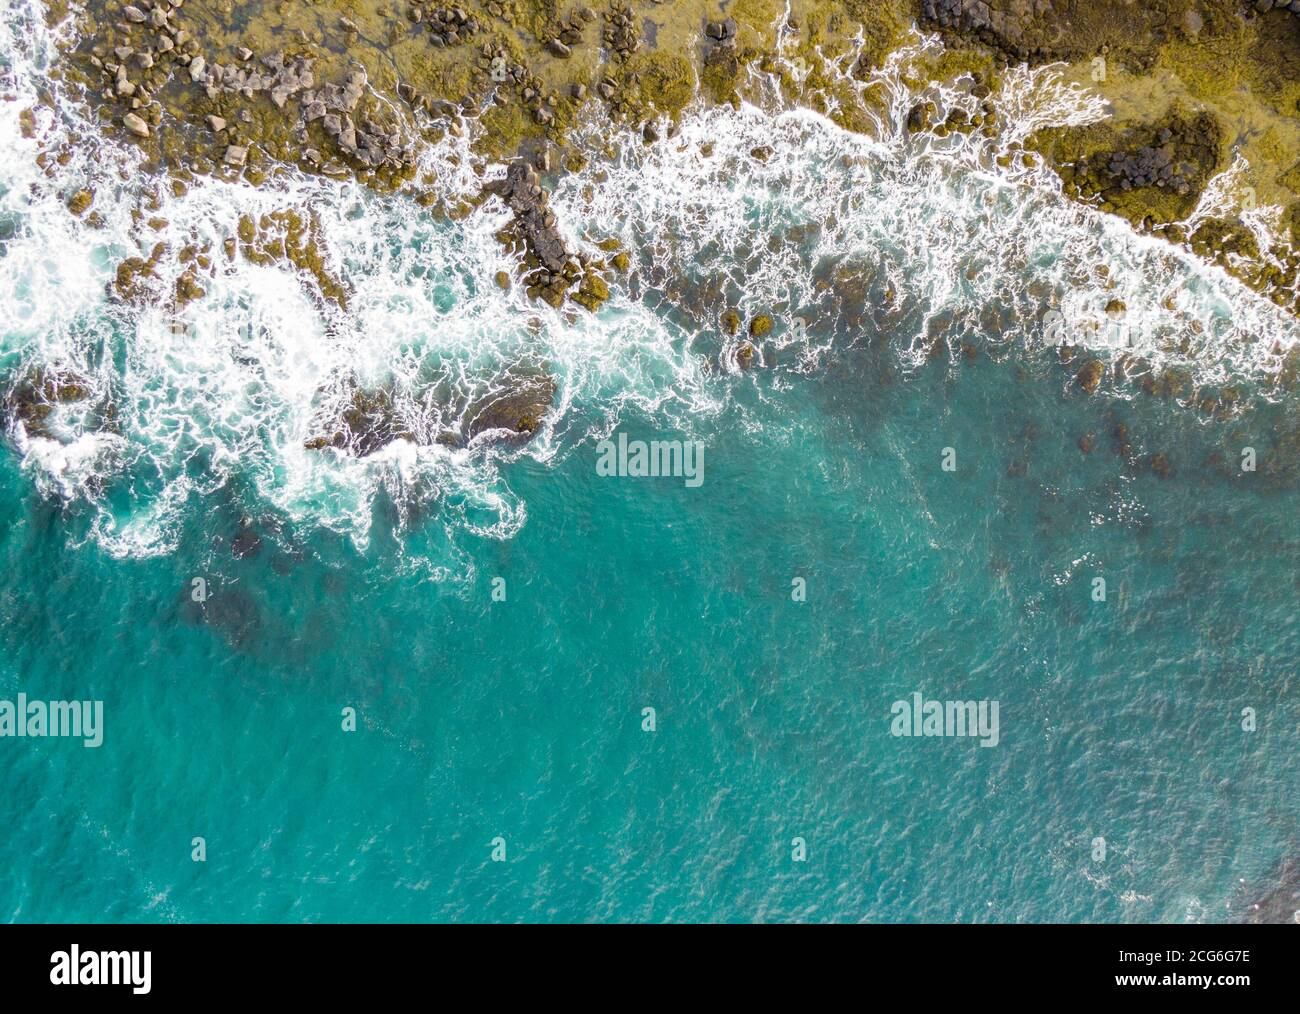 Icelandic coast, from the top, tempting color, but freezing temperature Stock Photo